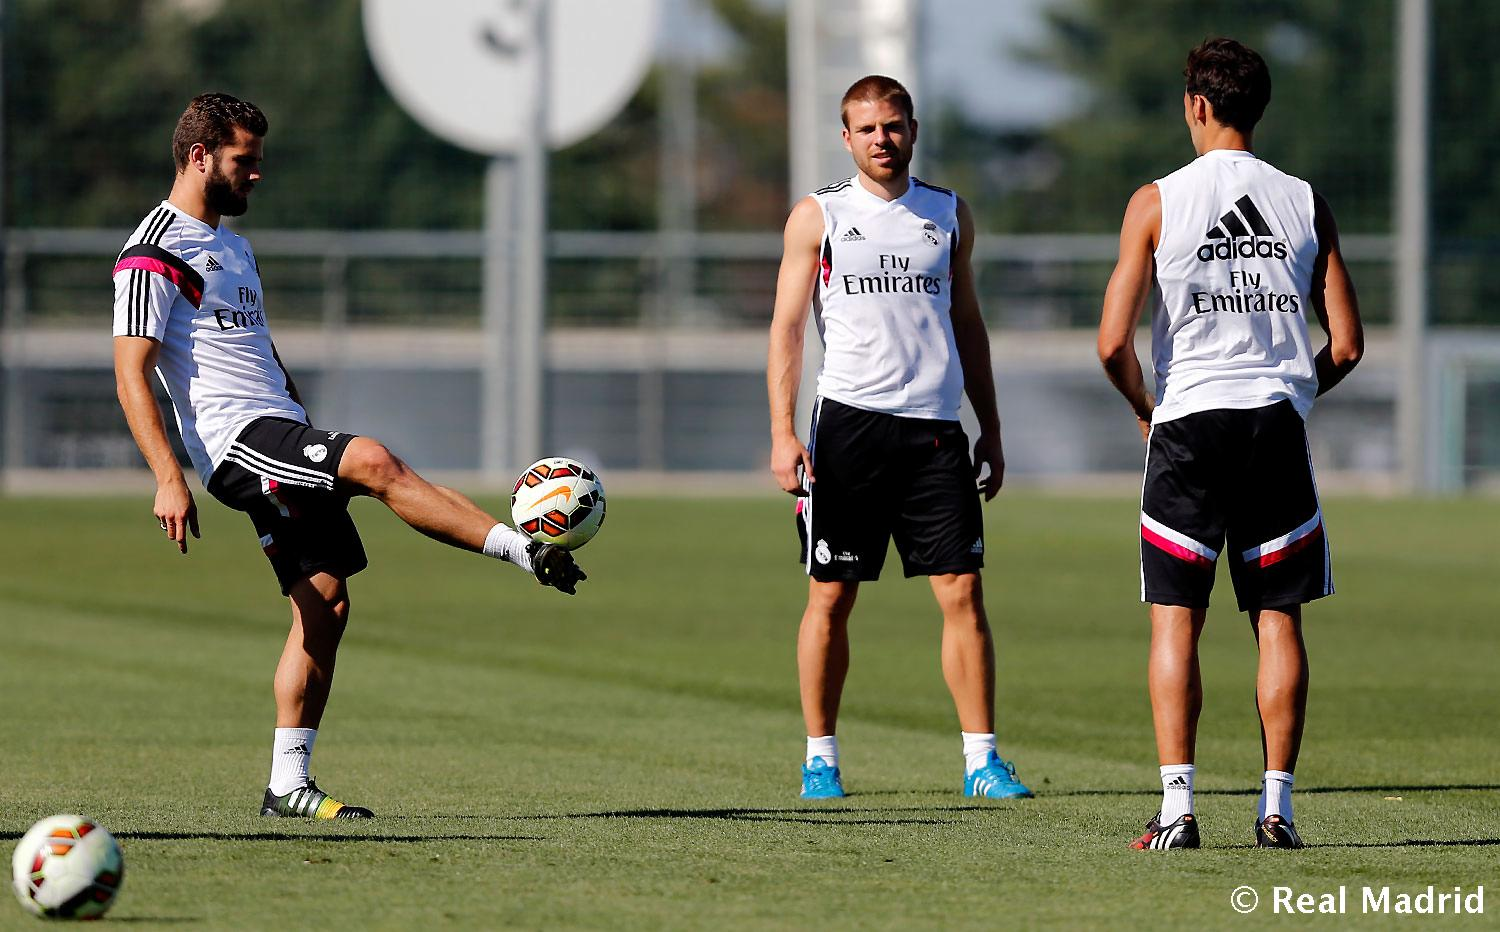 Real Madrid - Entrenamiento del Real Madrid - 03-09-2014